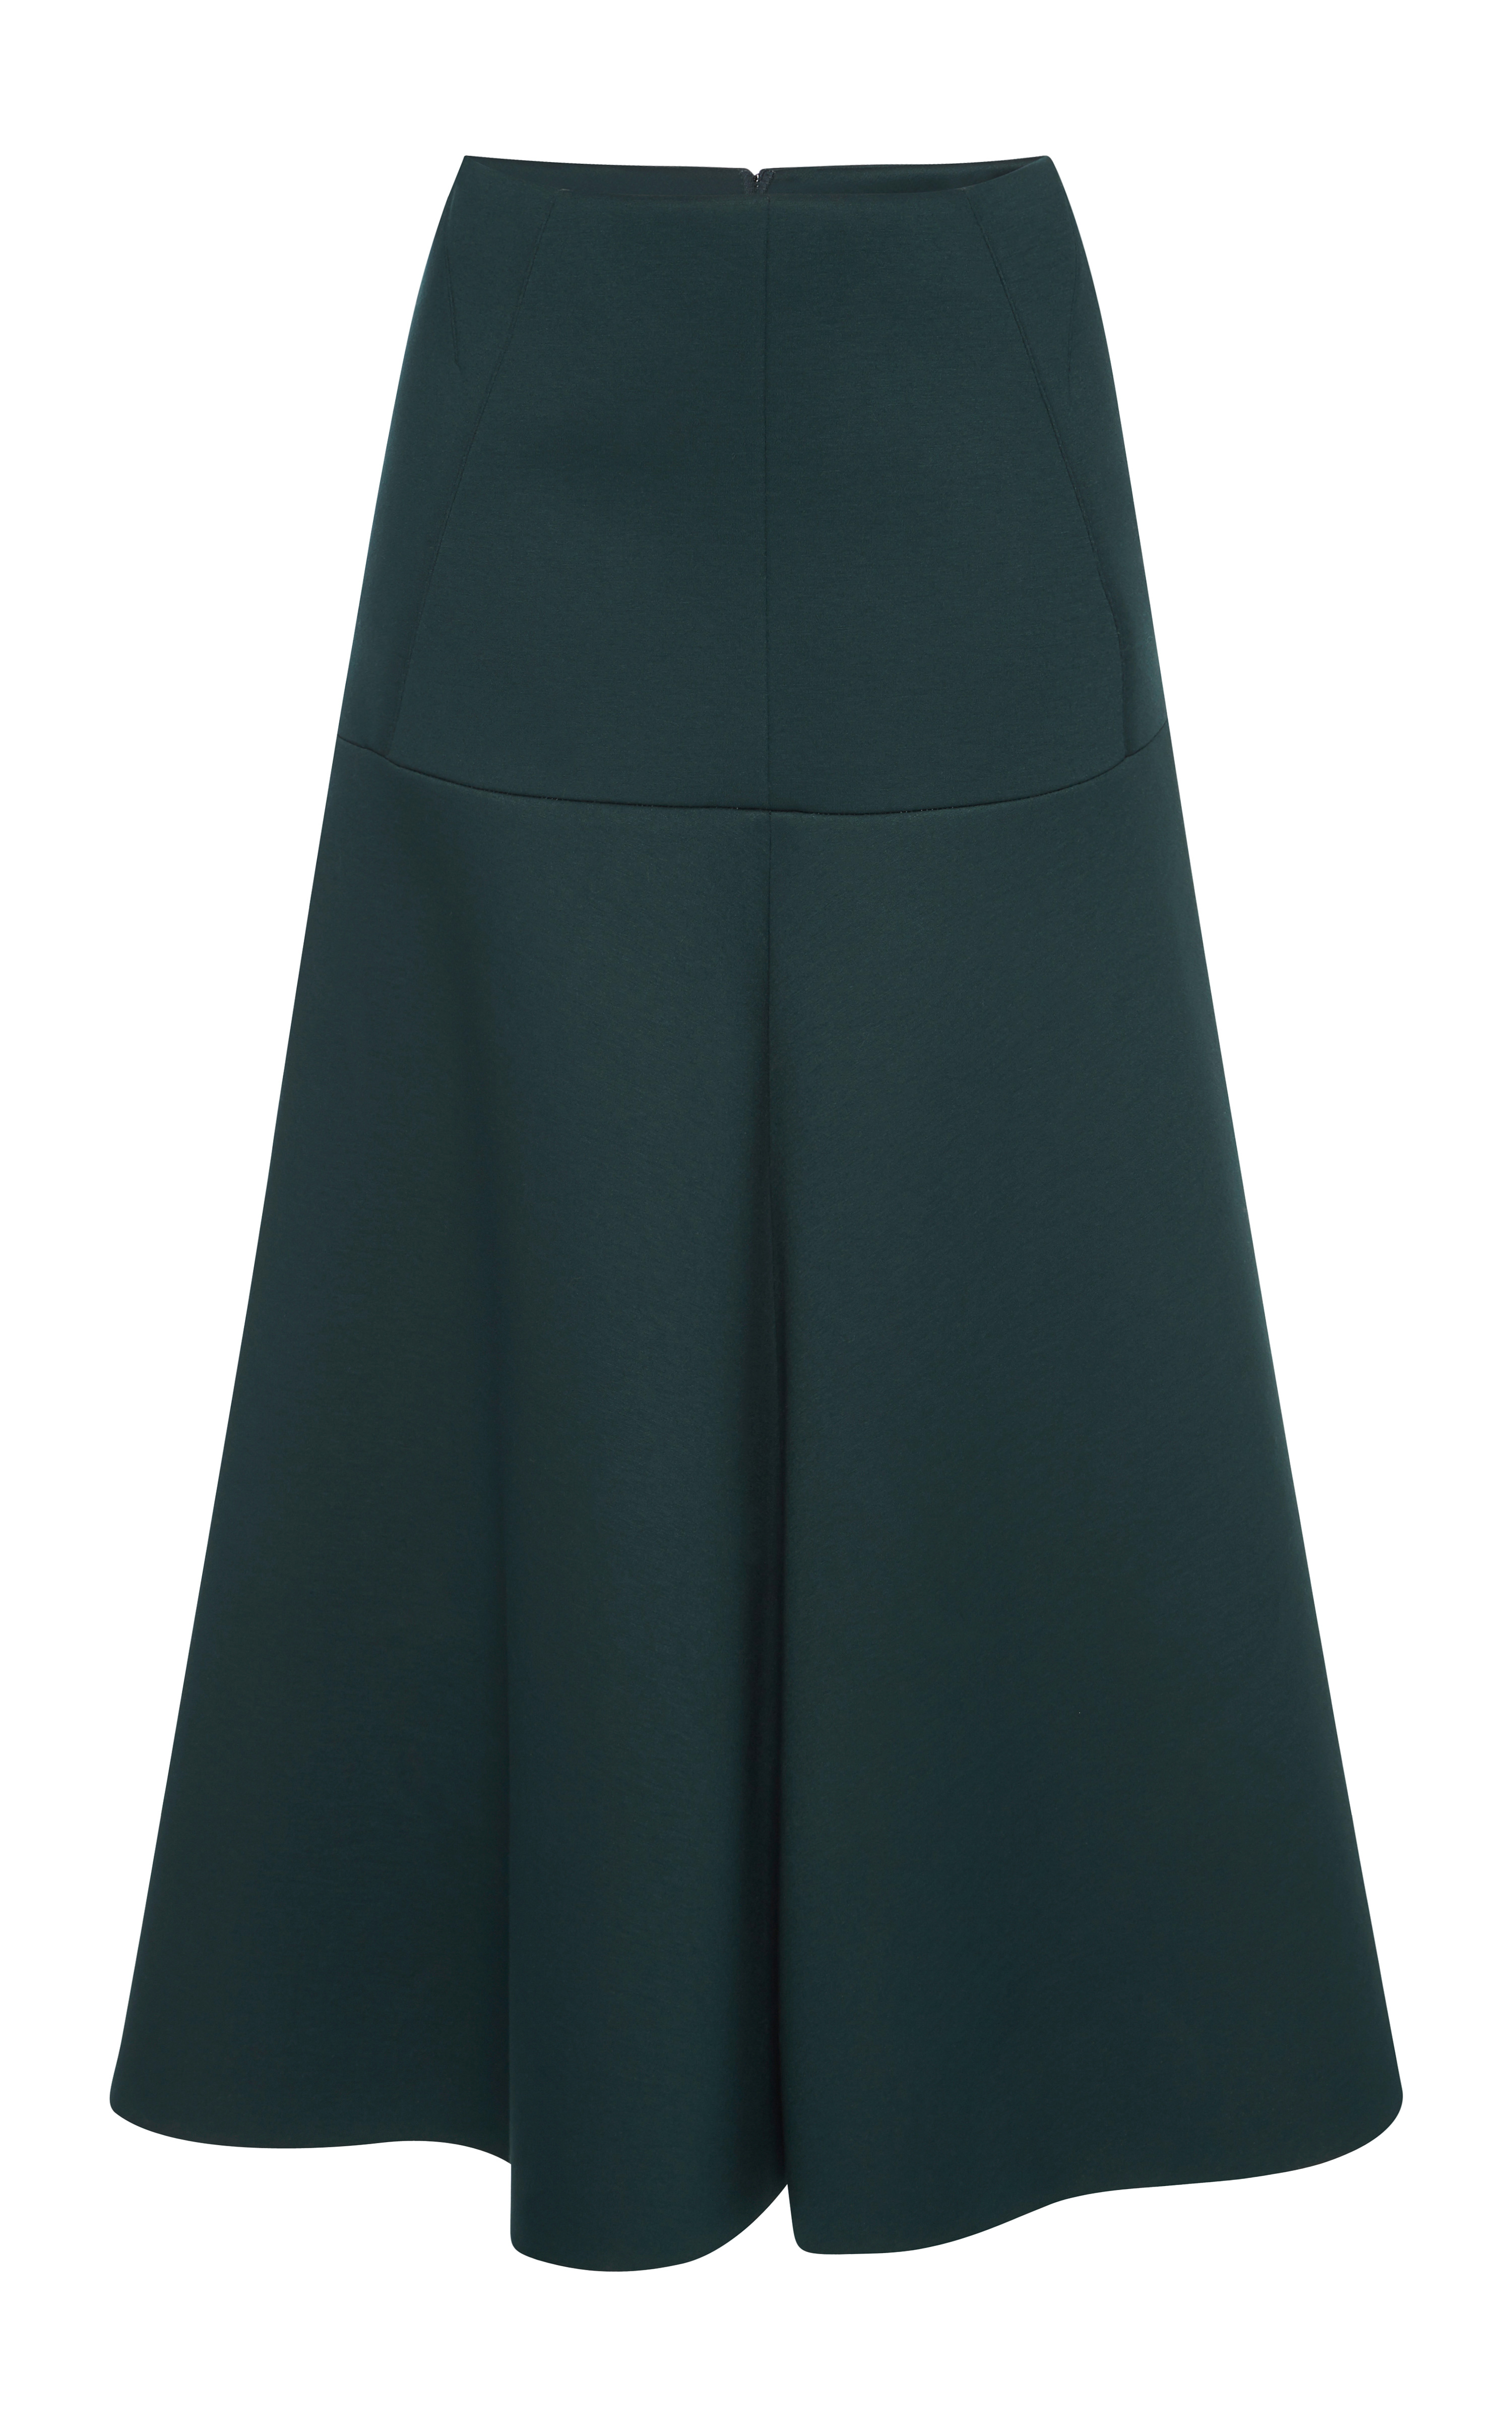 Marni Dark Green Bonded Jersey Long Skirt in Green | Lyst